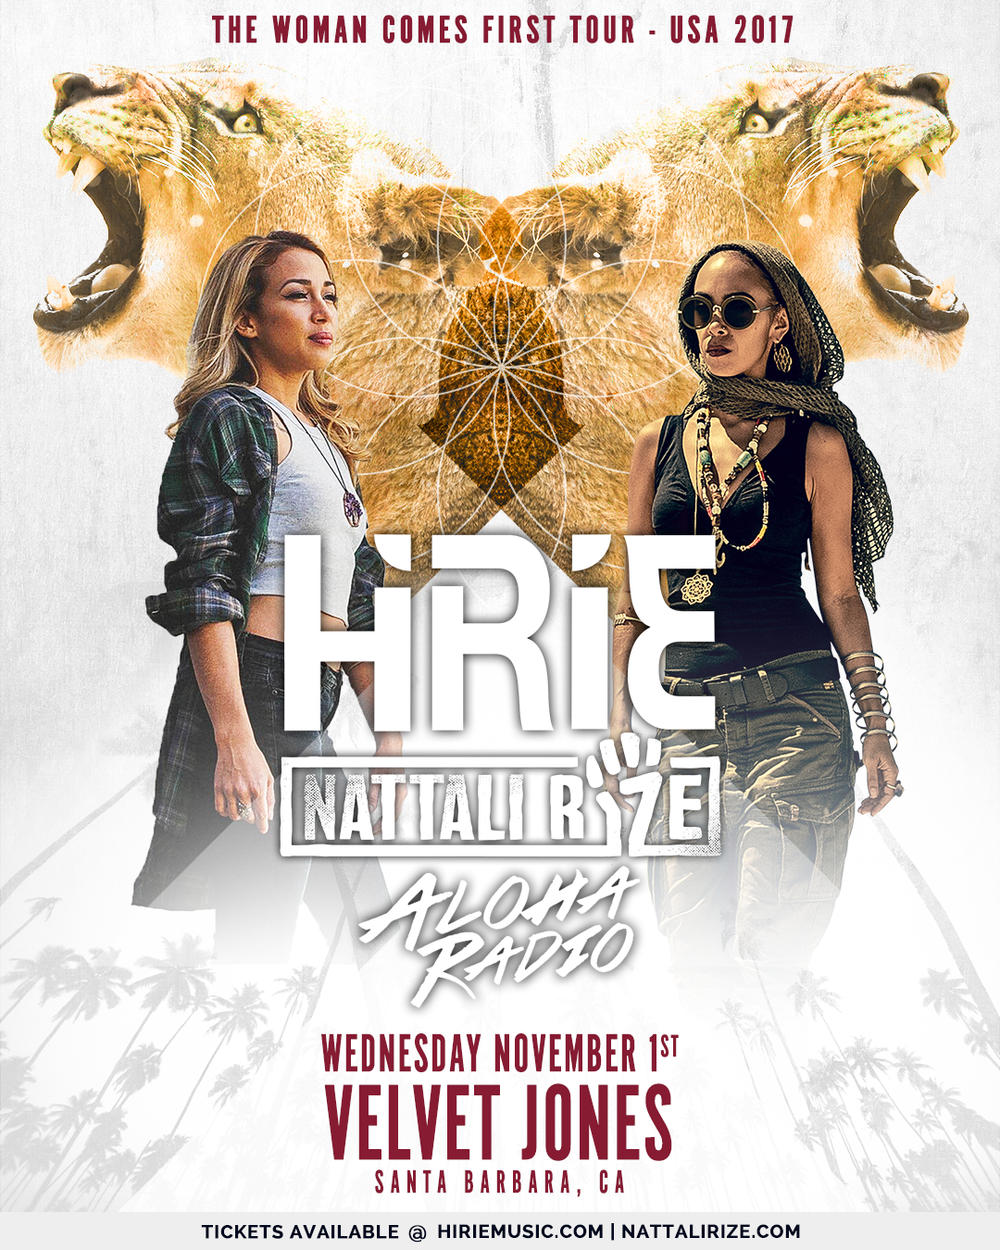 Aloha Radio will join Hirie and Nattali Rize at Velvet Jones in Santa Barbara, CA Wednesday, November 1st!